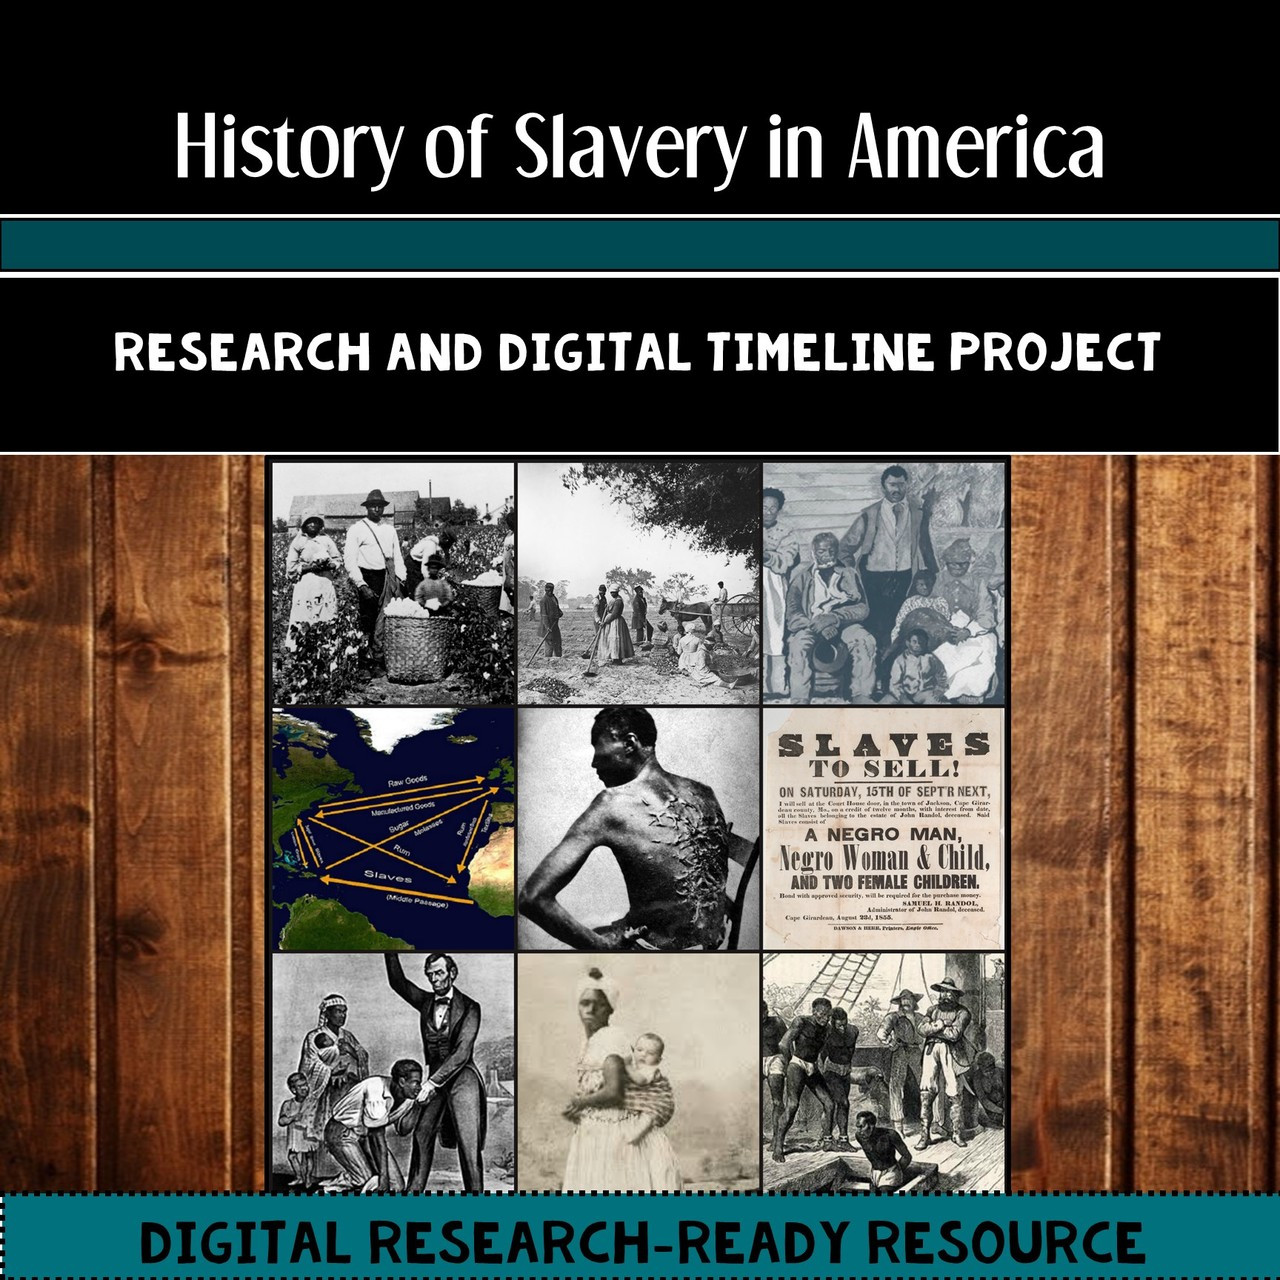 slavery and the slave trade in america us history research and